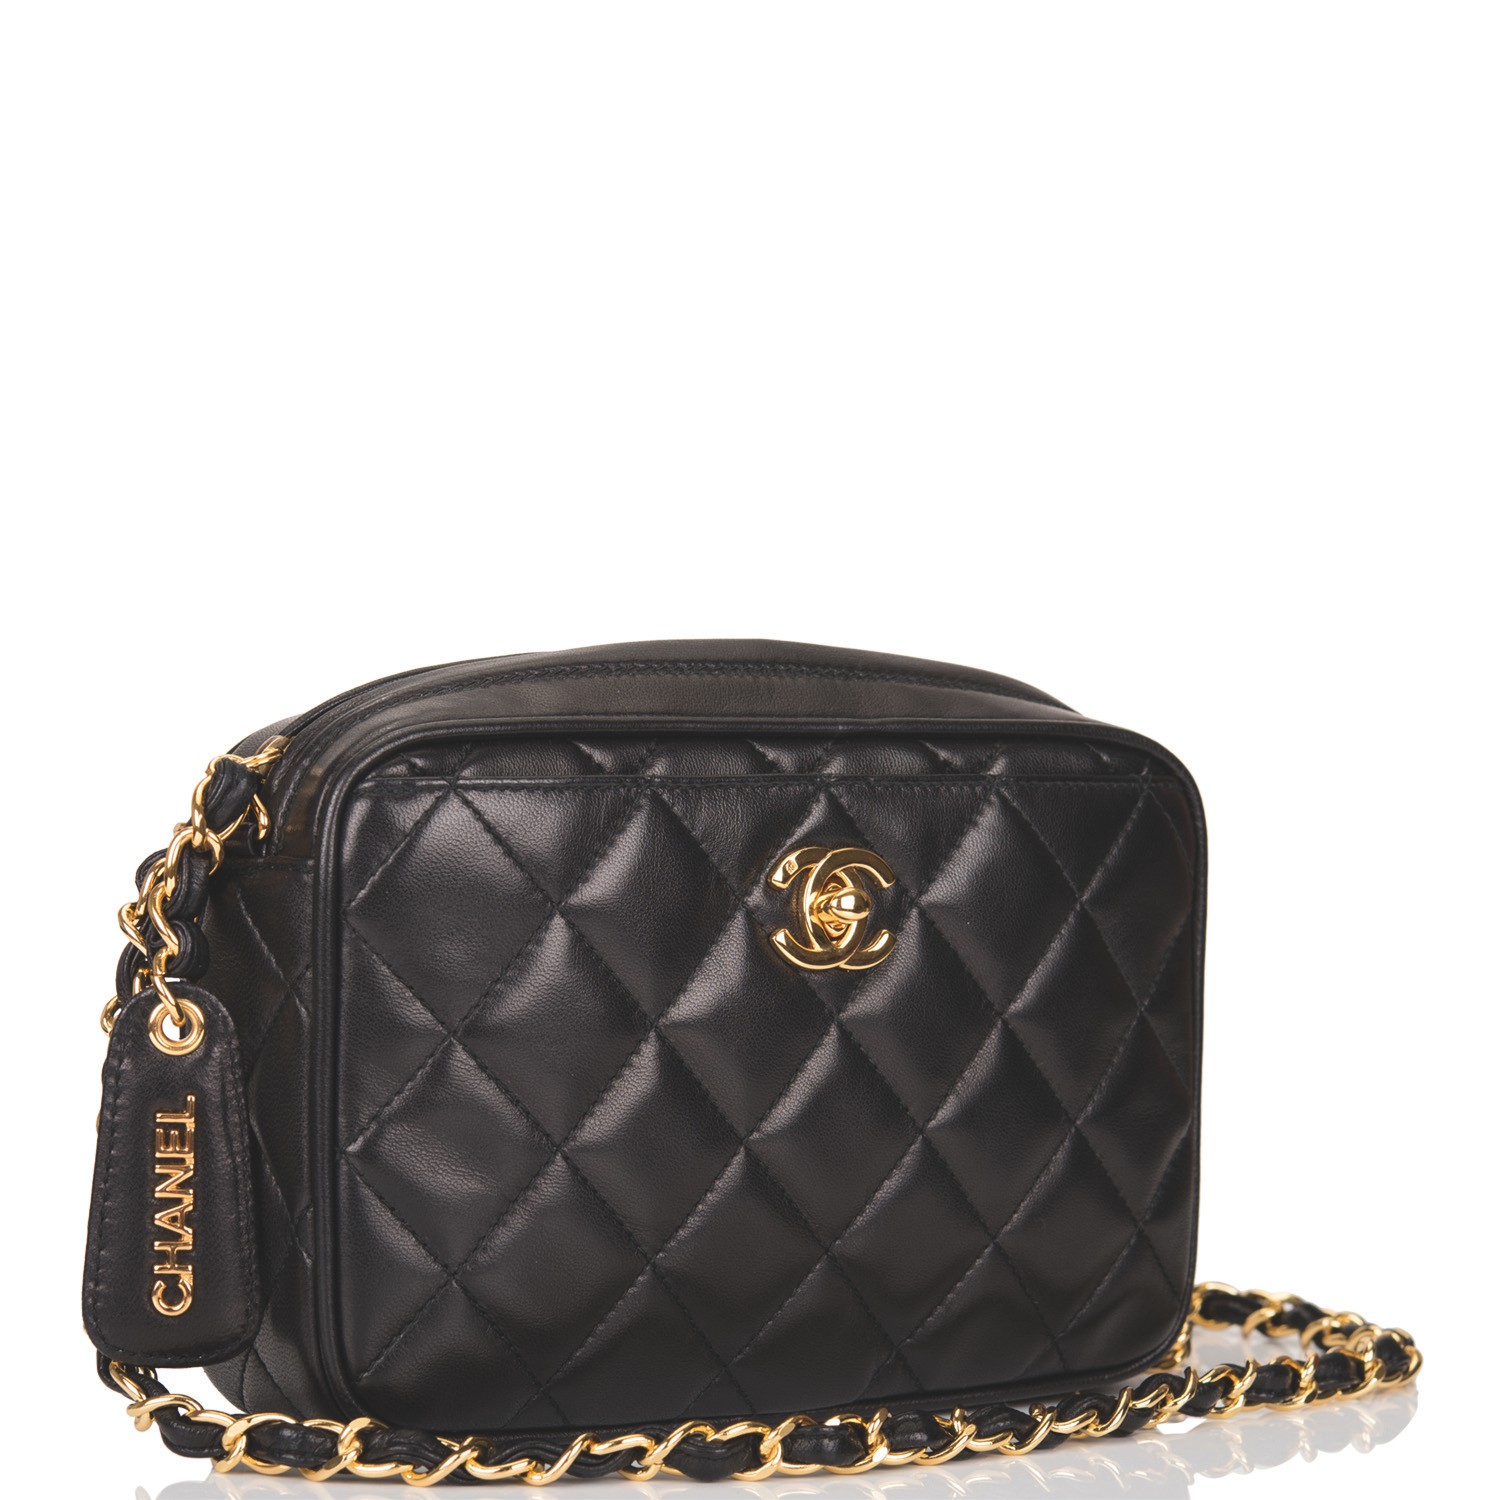 5d2a0e51 Chanel Black Camera Bag of Quilted Lambskin Leather with ...